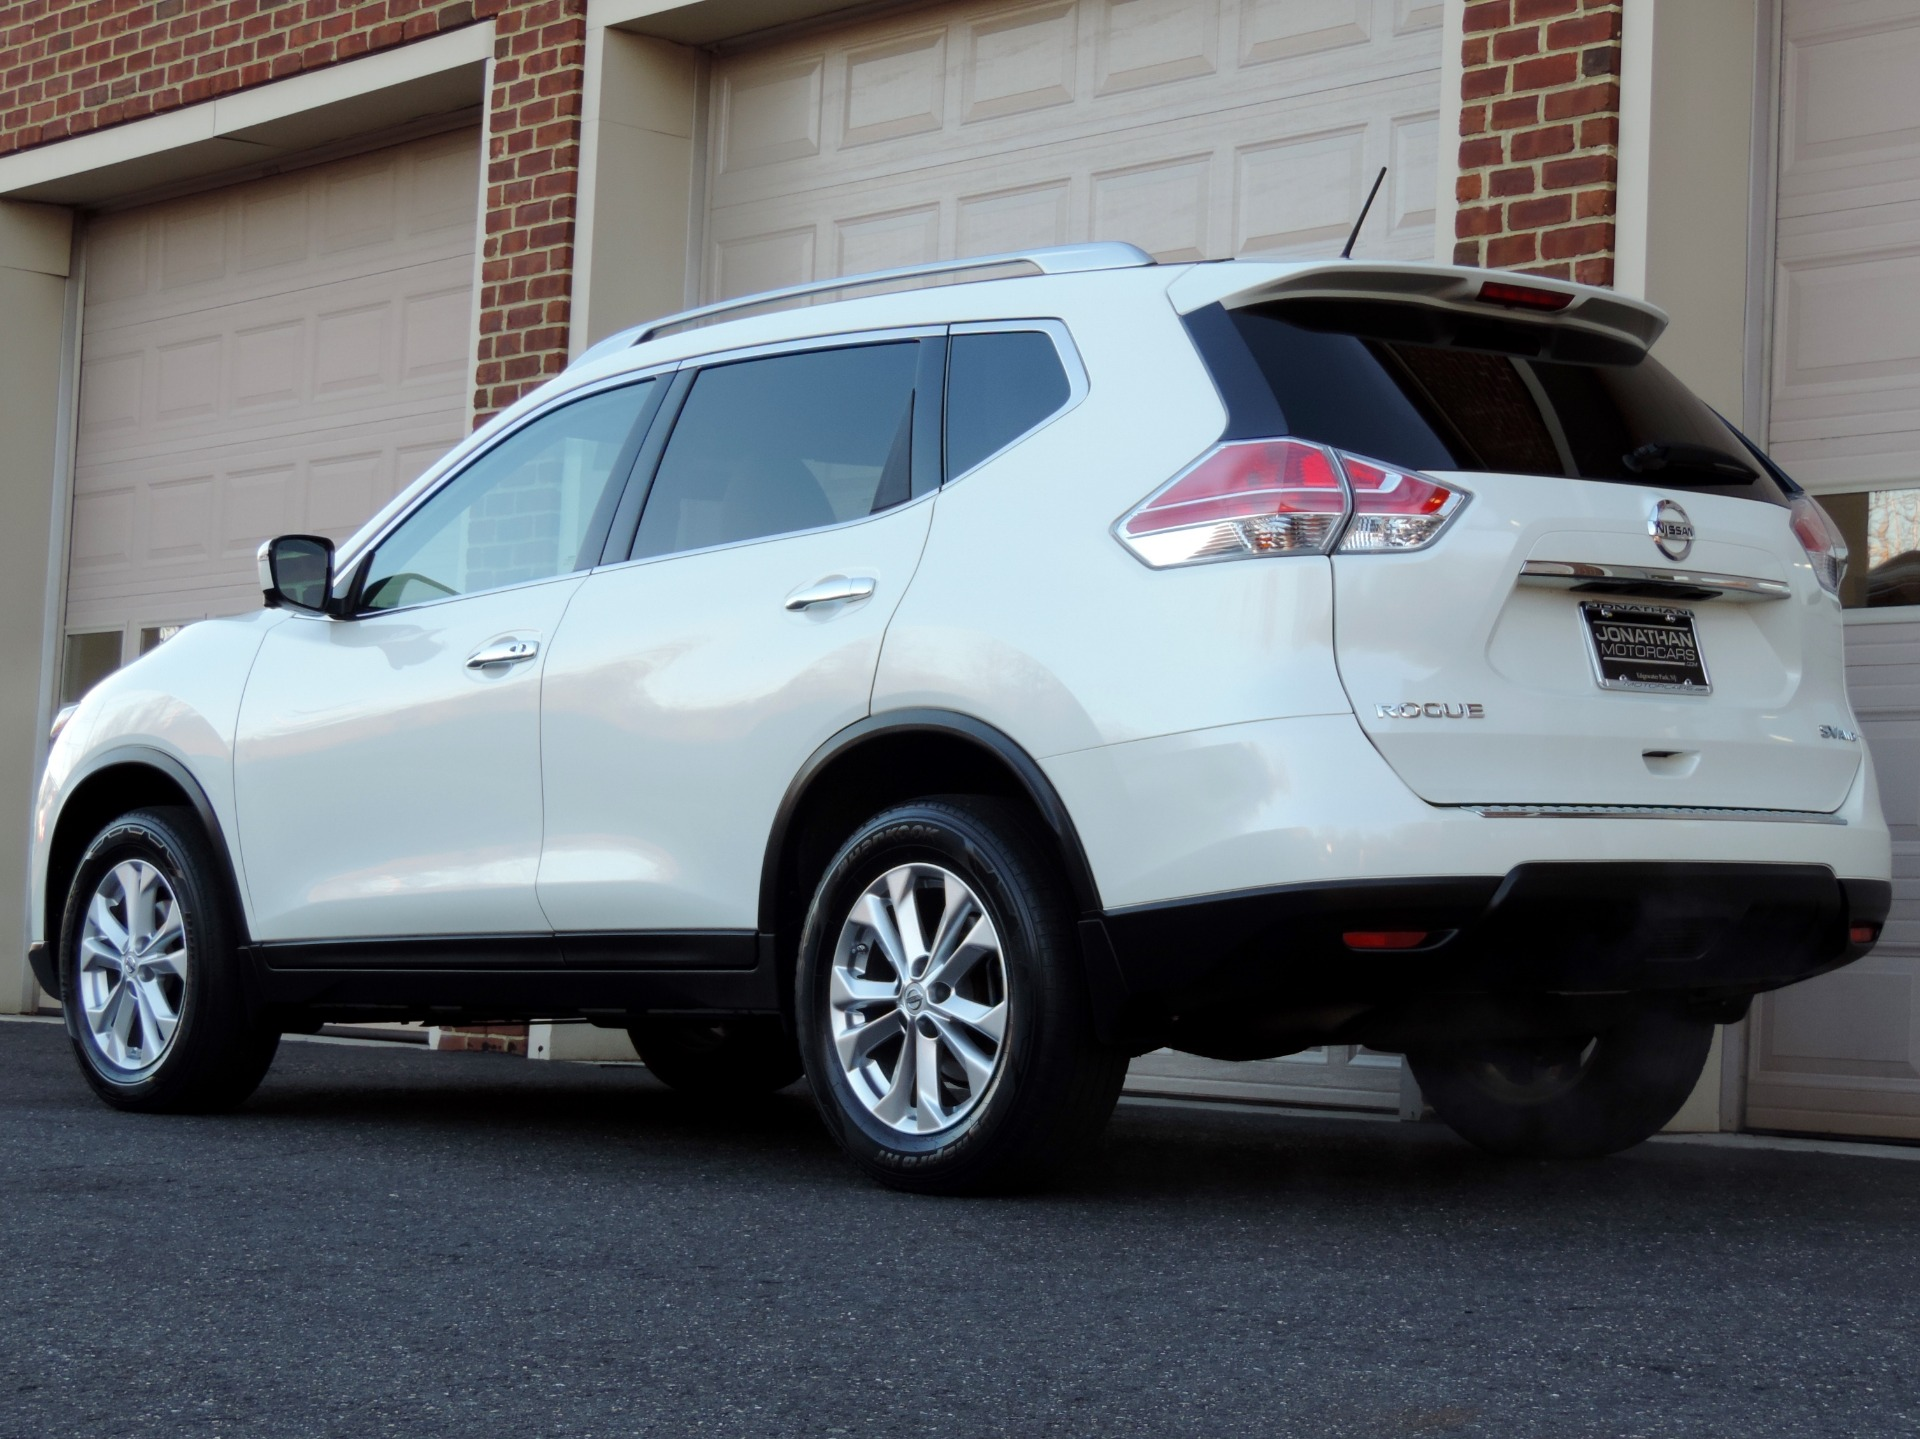 Nissan Dealers In Nj >> 2016 Nissan Rogue SV Premium Stock # 658121 for sale near ...